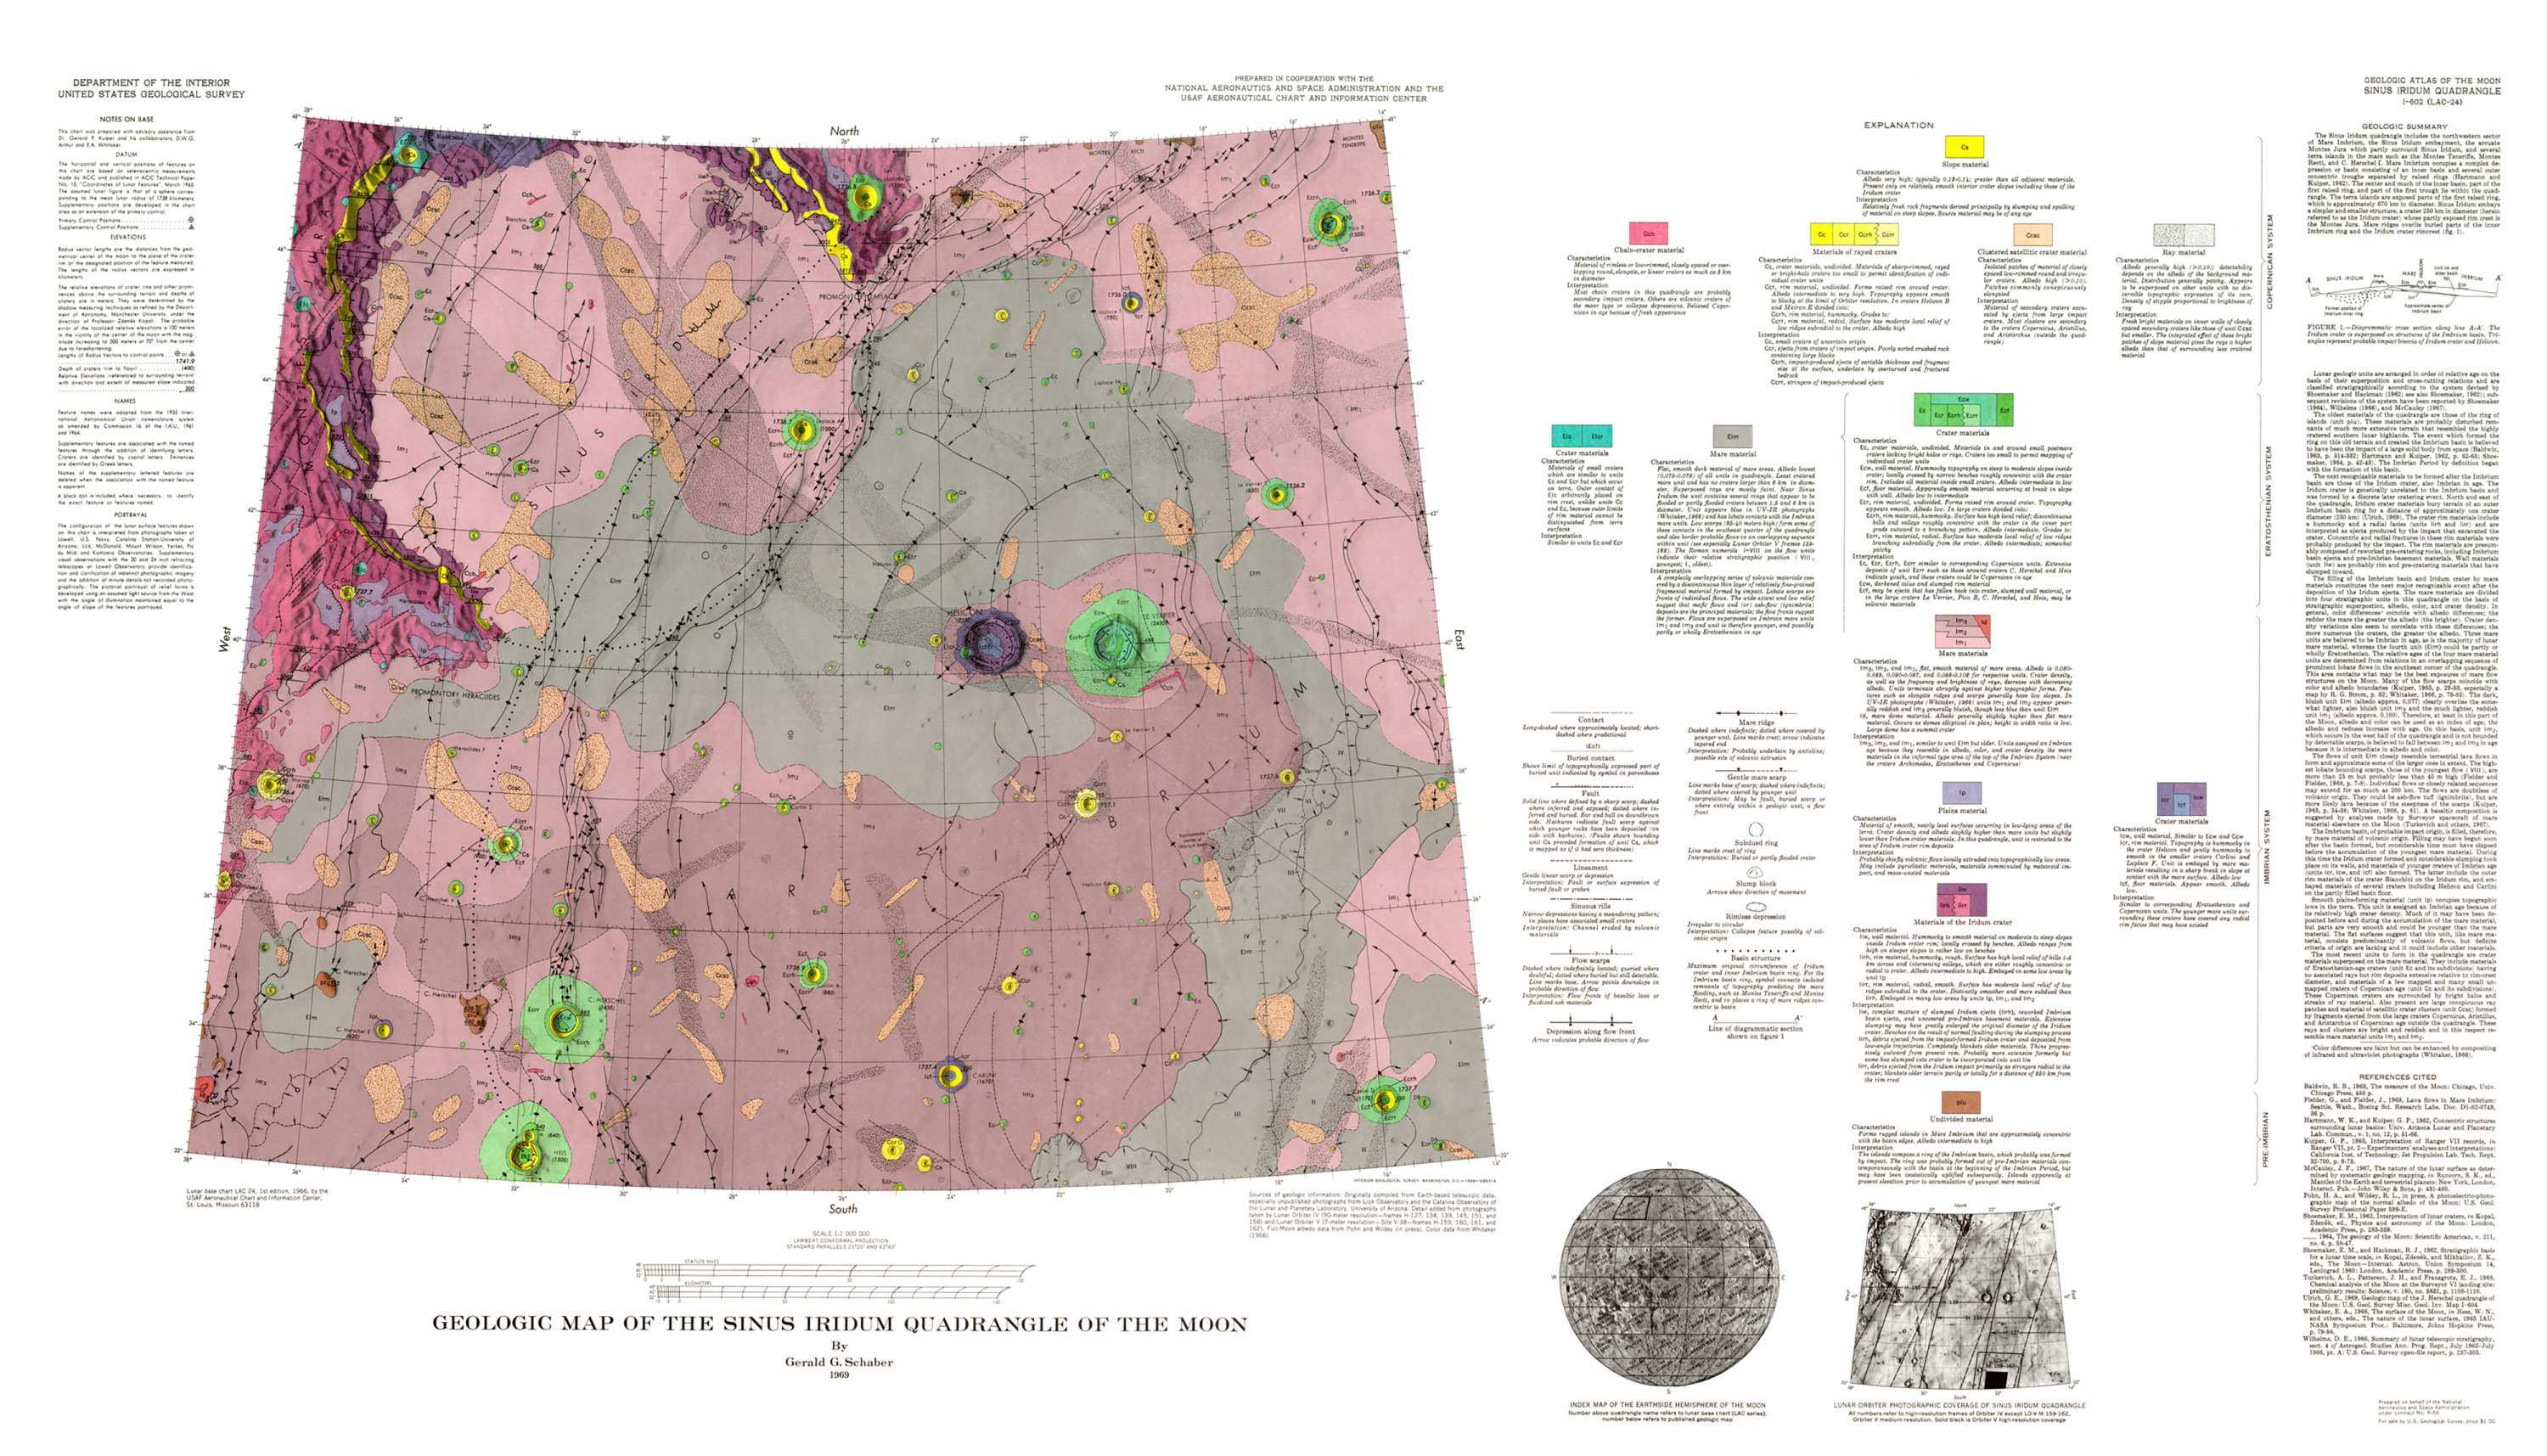 Geologic Atlas of the Moon